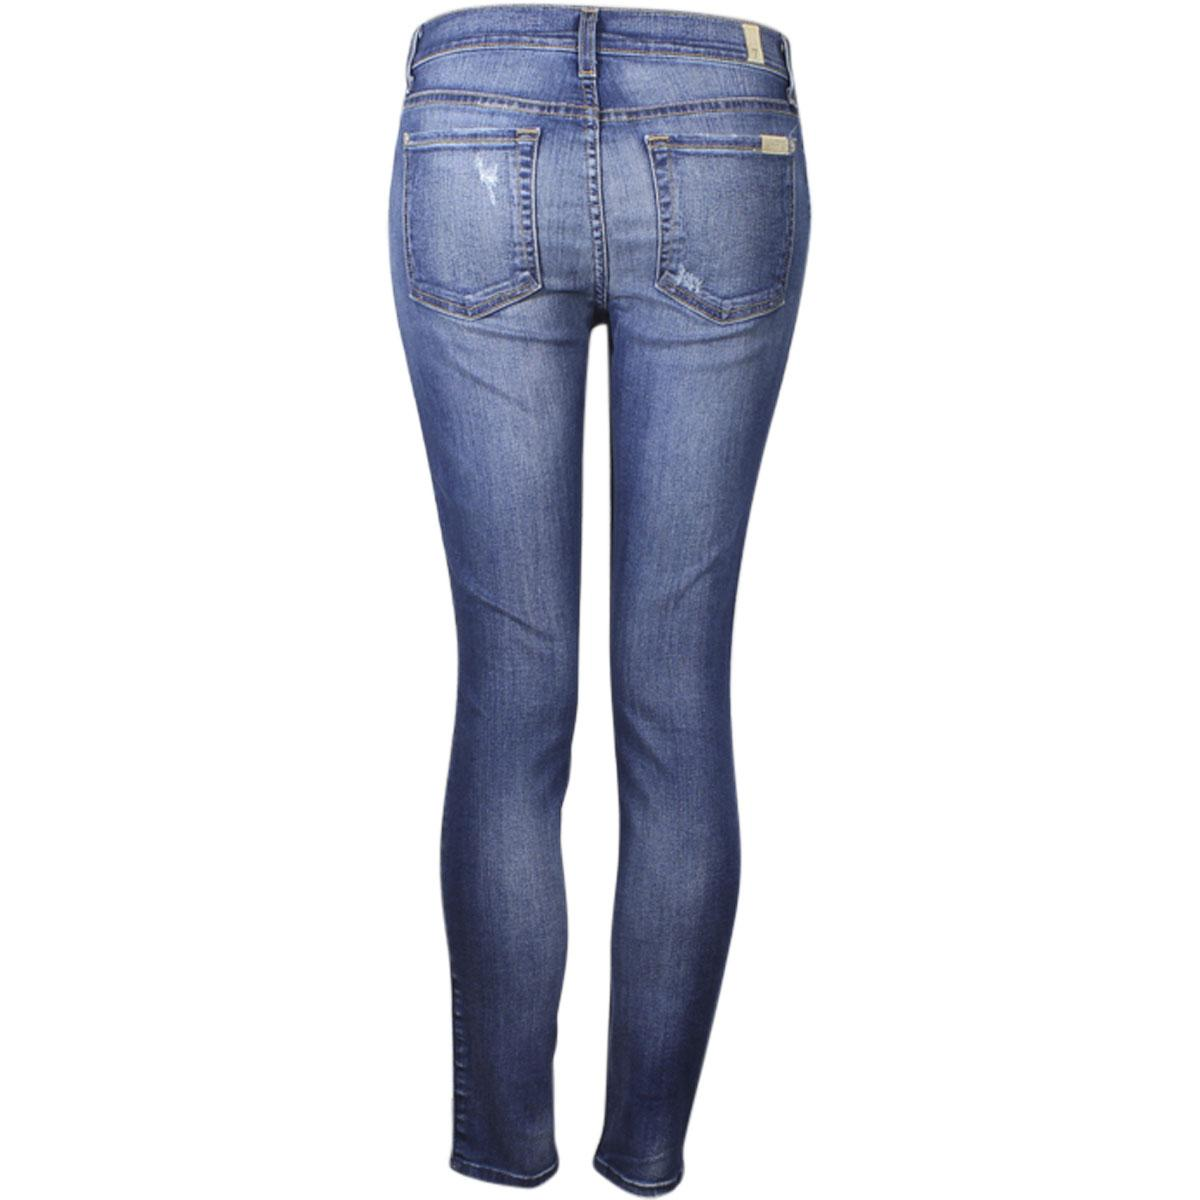 8a2d093983 ... Women's The Ankle Skinny With Destroy Jeans by 7 For All Mankind. 12